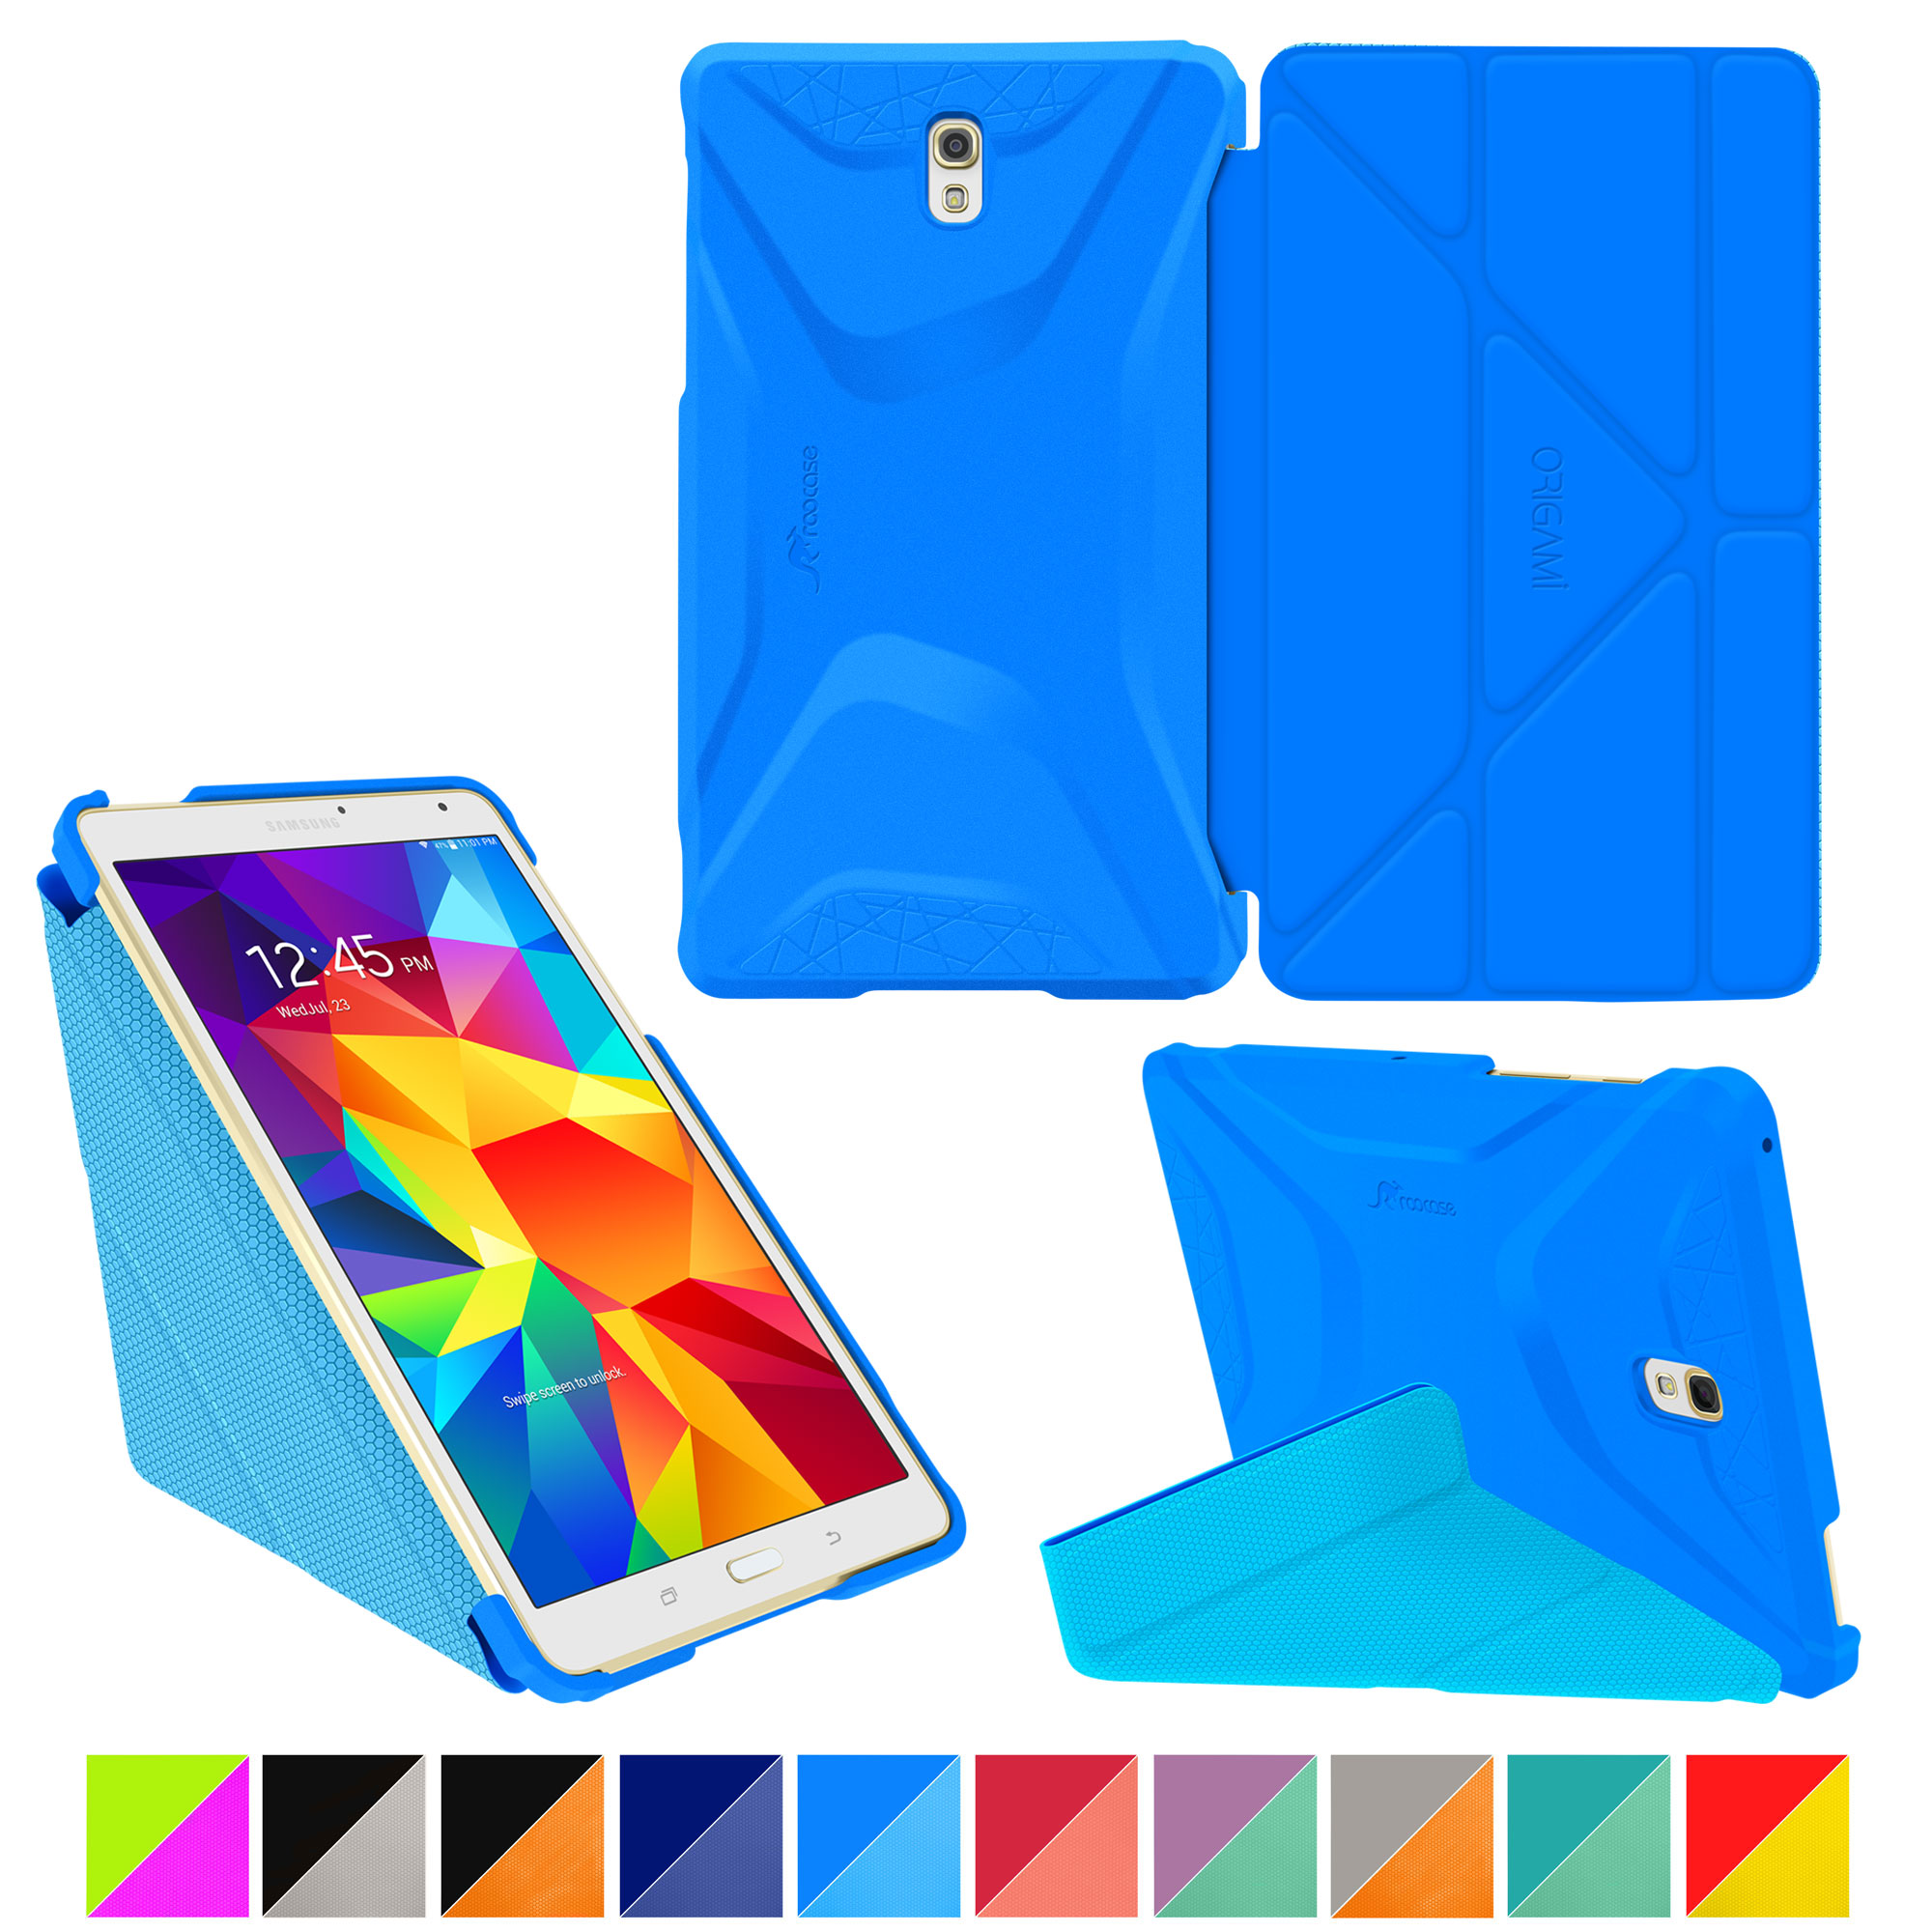 Galaxy Tab S 8.4 Case, Samsung Galaxy Tab S 8.4 case, rooCASE Origami (3 Way Stand) Slim Shell Lightweight Tablet Folio Smart Cover Pac Blue